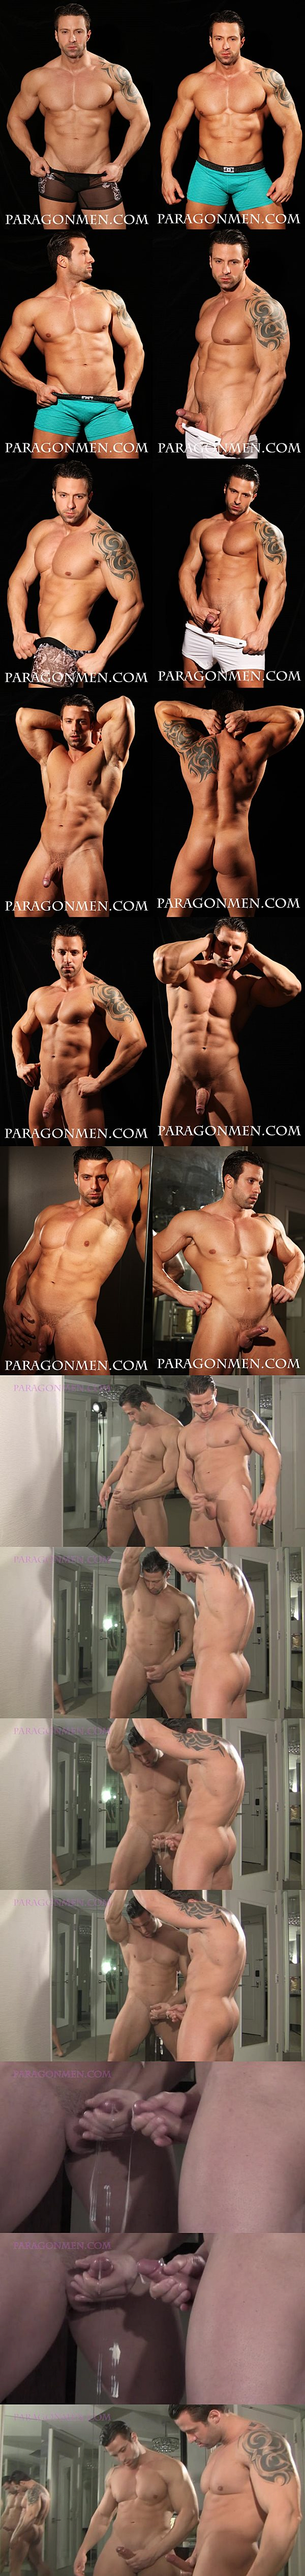 Sexy Italian muscle hunk Dante aka Angel Diablo shows off his hot muscular body and shoots his super big loads at Paragonmen 02